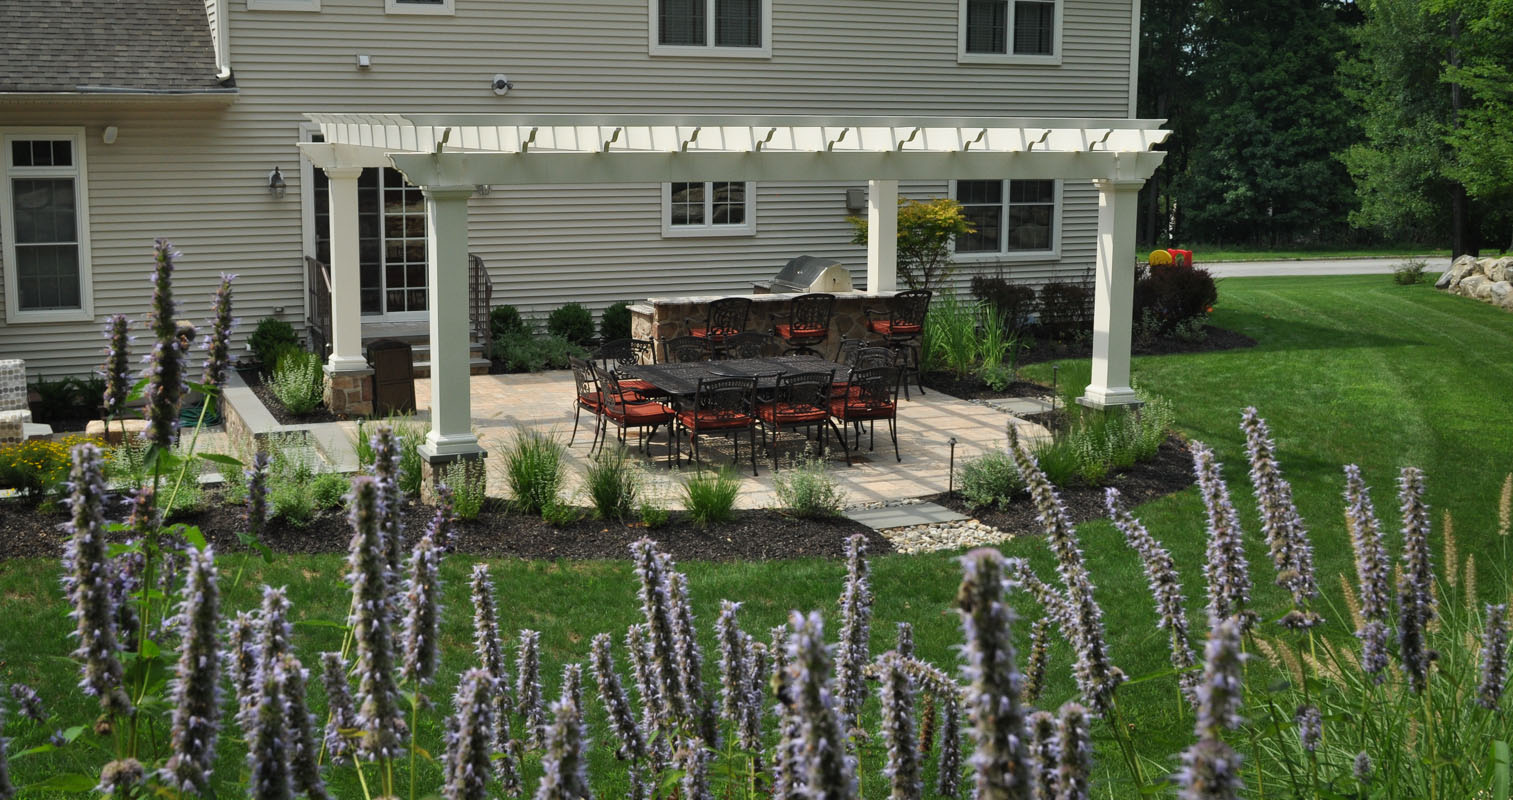 backyard landscape design with paver patio and custom white pergola - north jersey